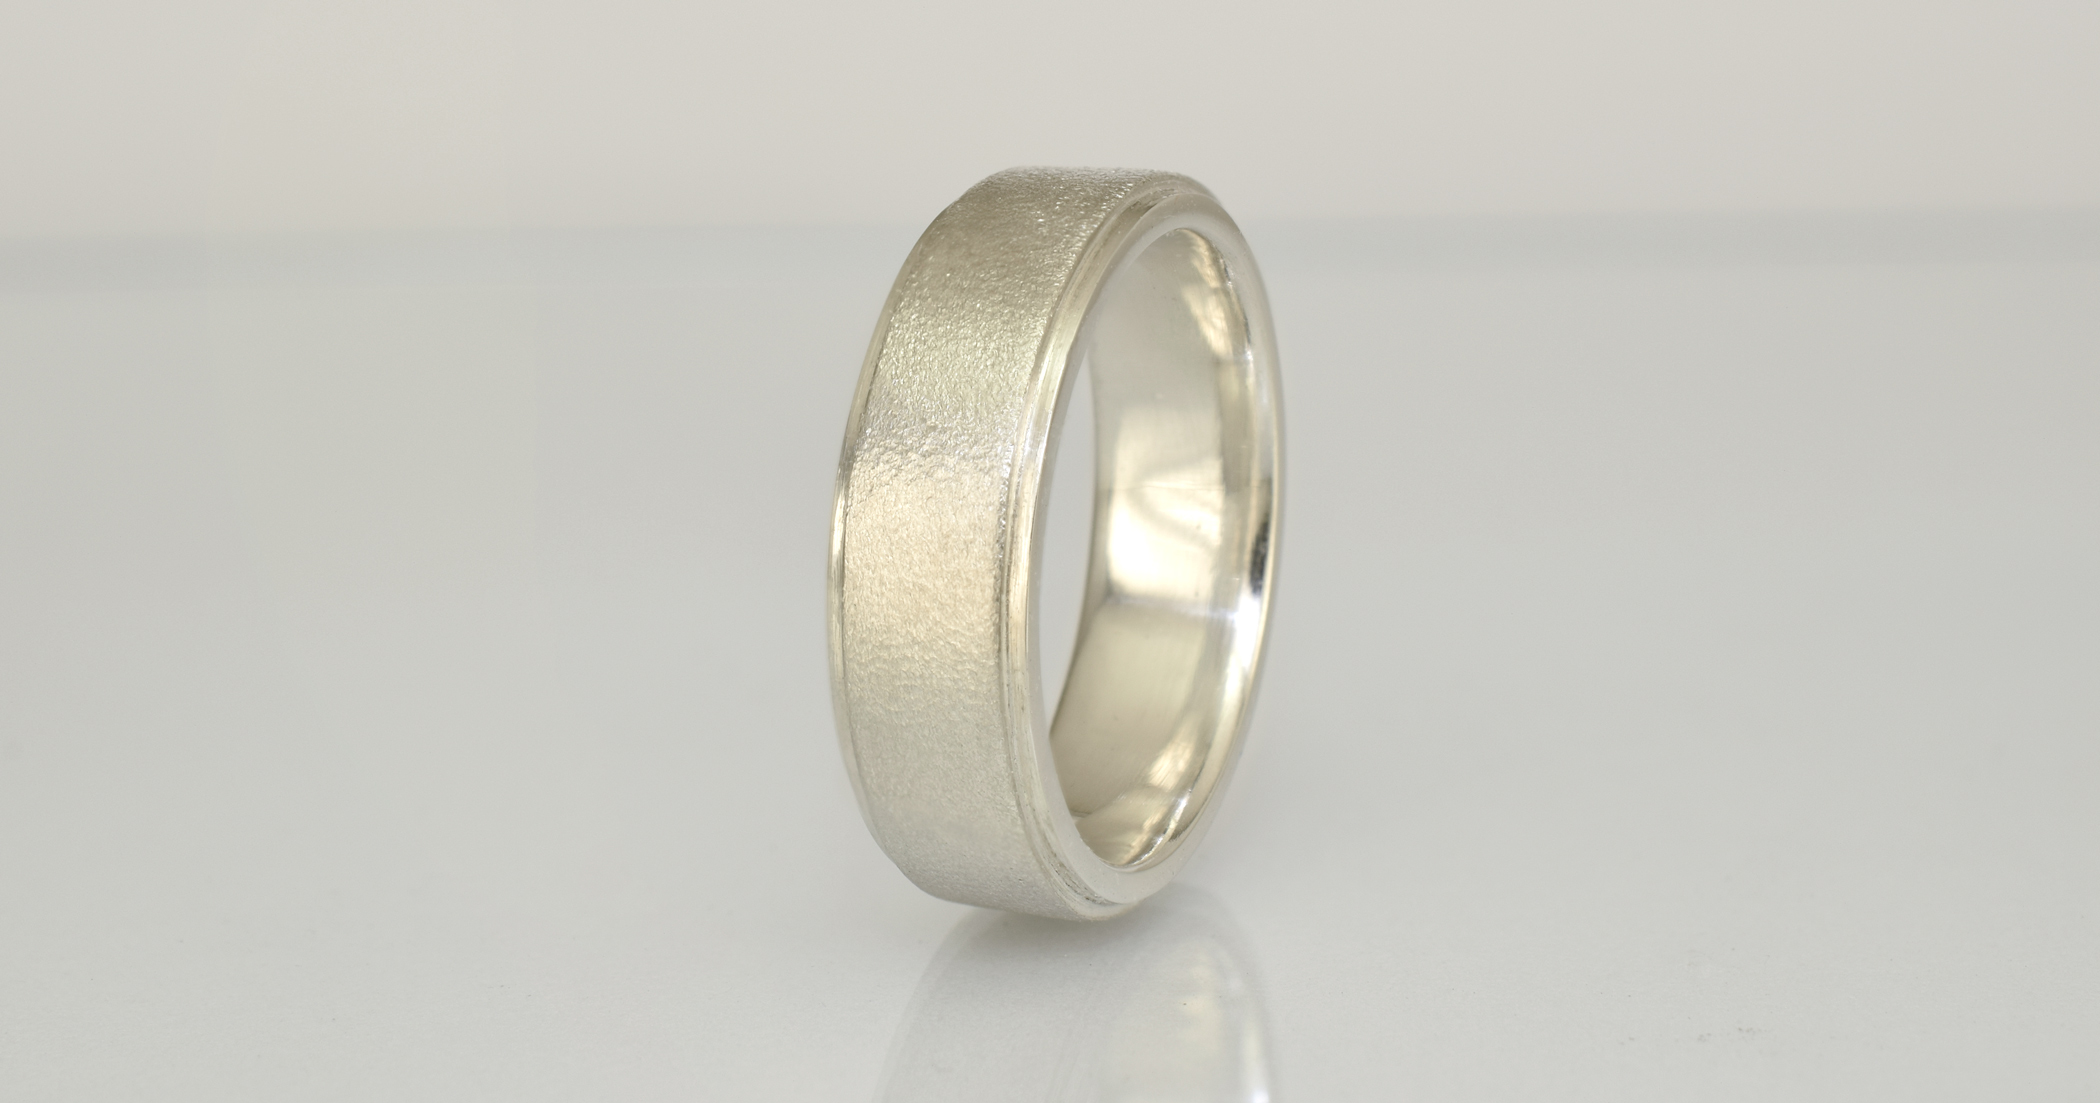 1 - Groom`s palladium sterling silver wedding ring delivery.